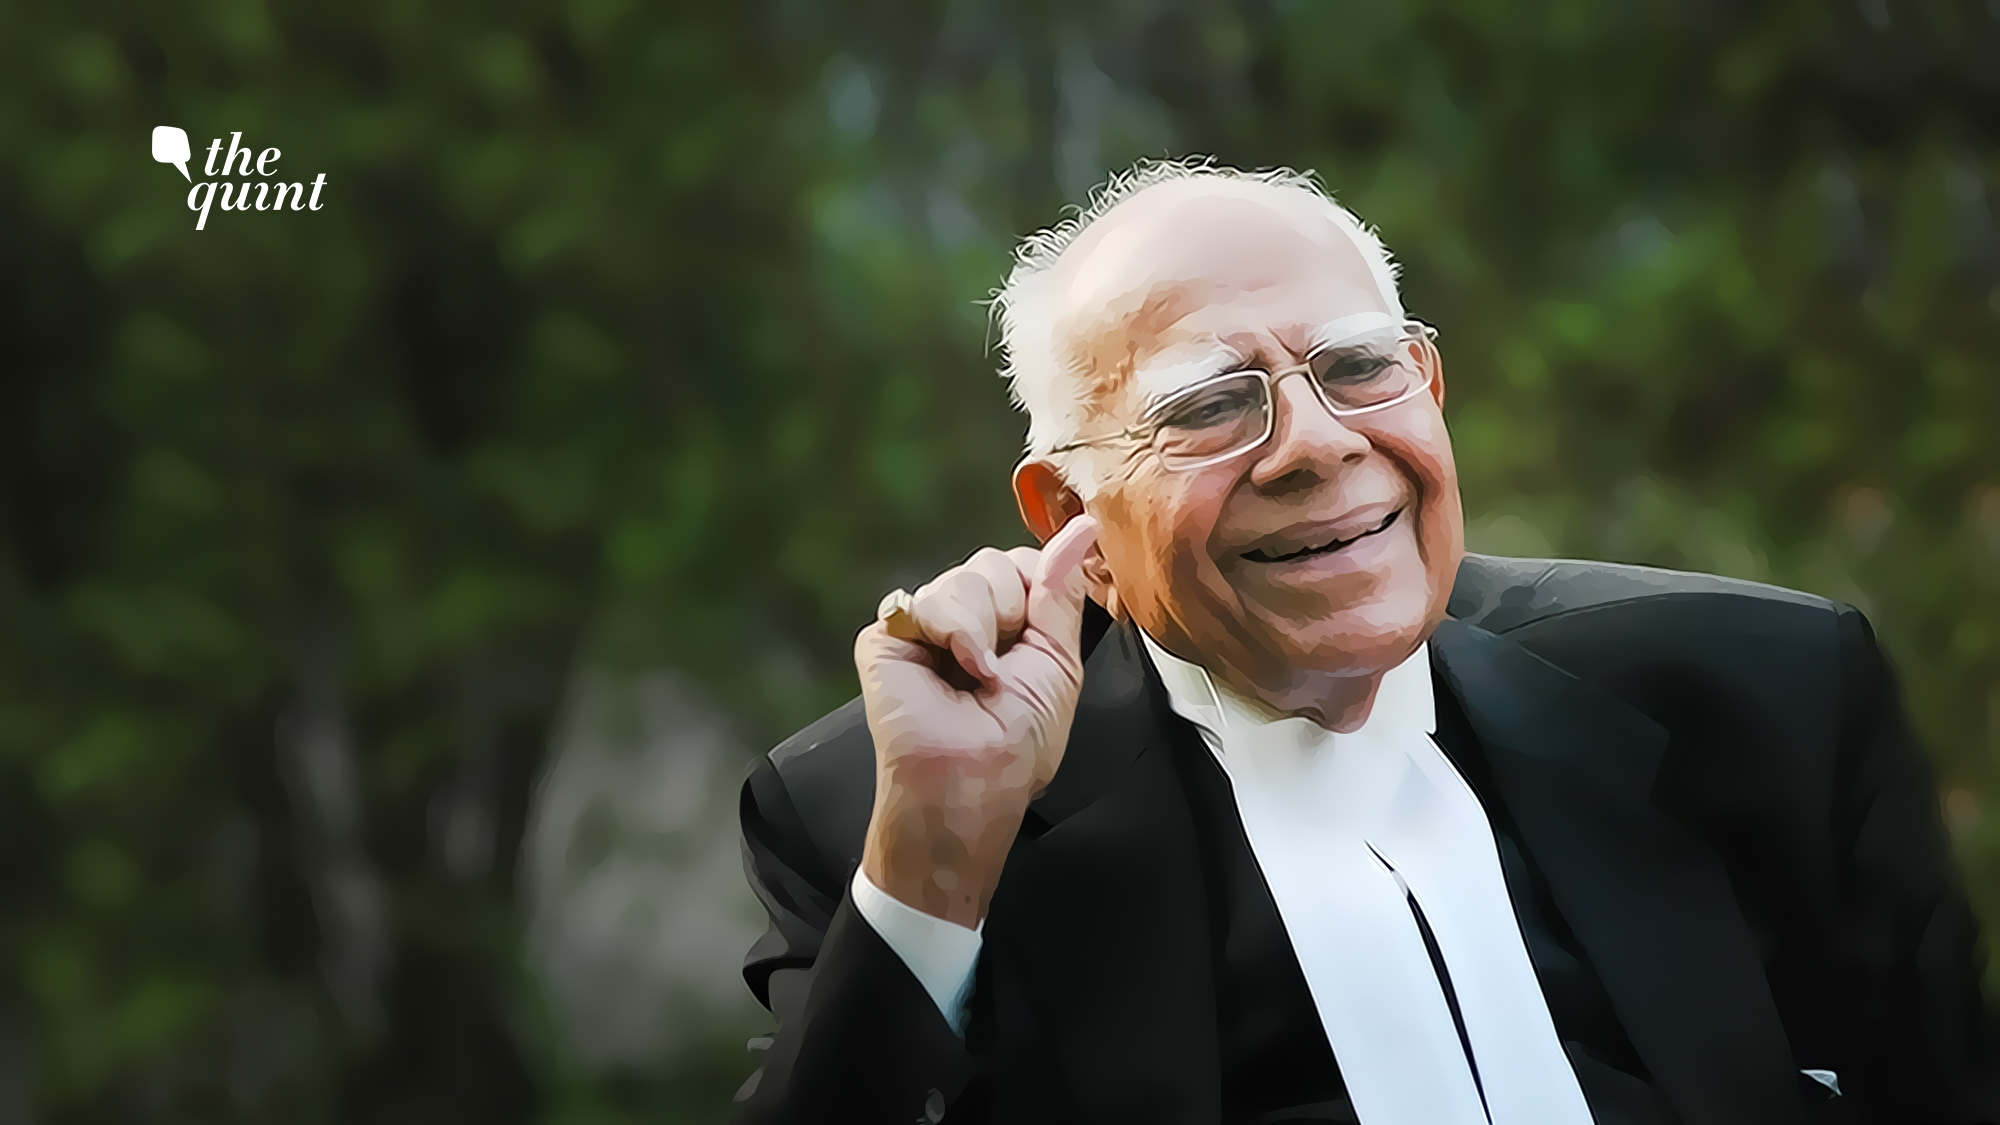 A Tribute to Ram Jethmalani Sir from a Junior Associate